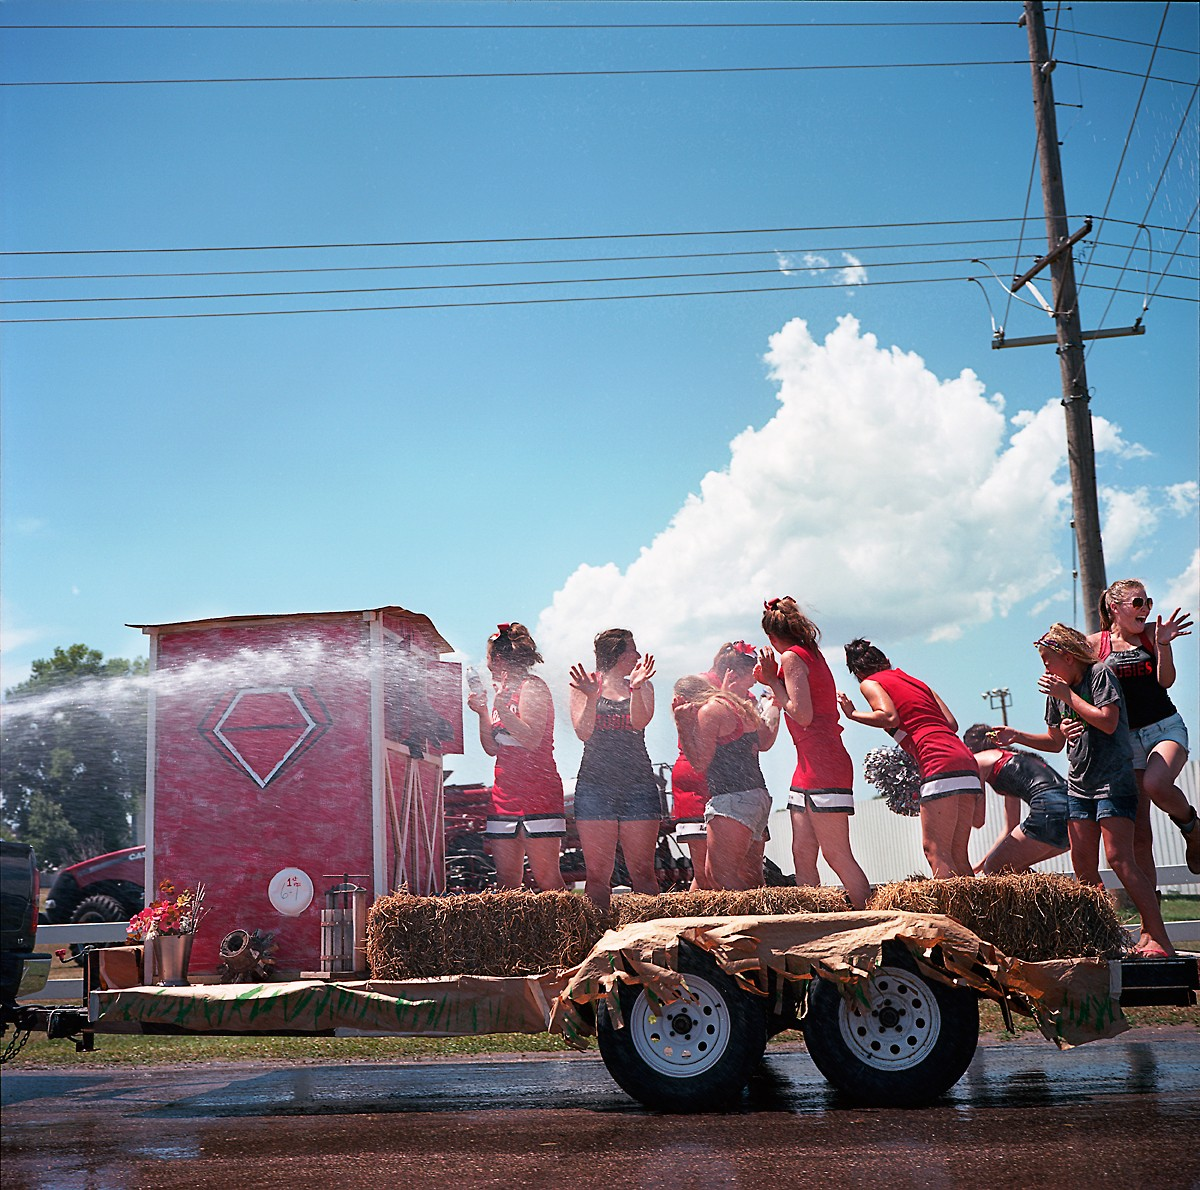 A parade float heads back to a parking lot following a parade in Albion, Nebraska at the Boone County Fair. Albion is four miles from where the proposed Keystone XL pipeline would be constructed.